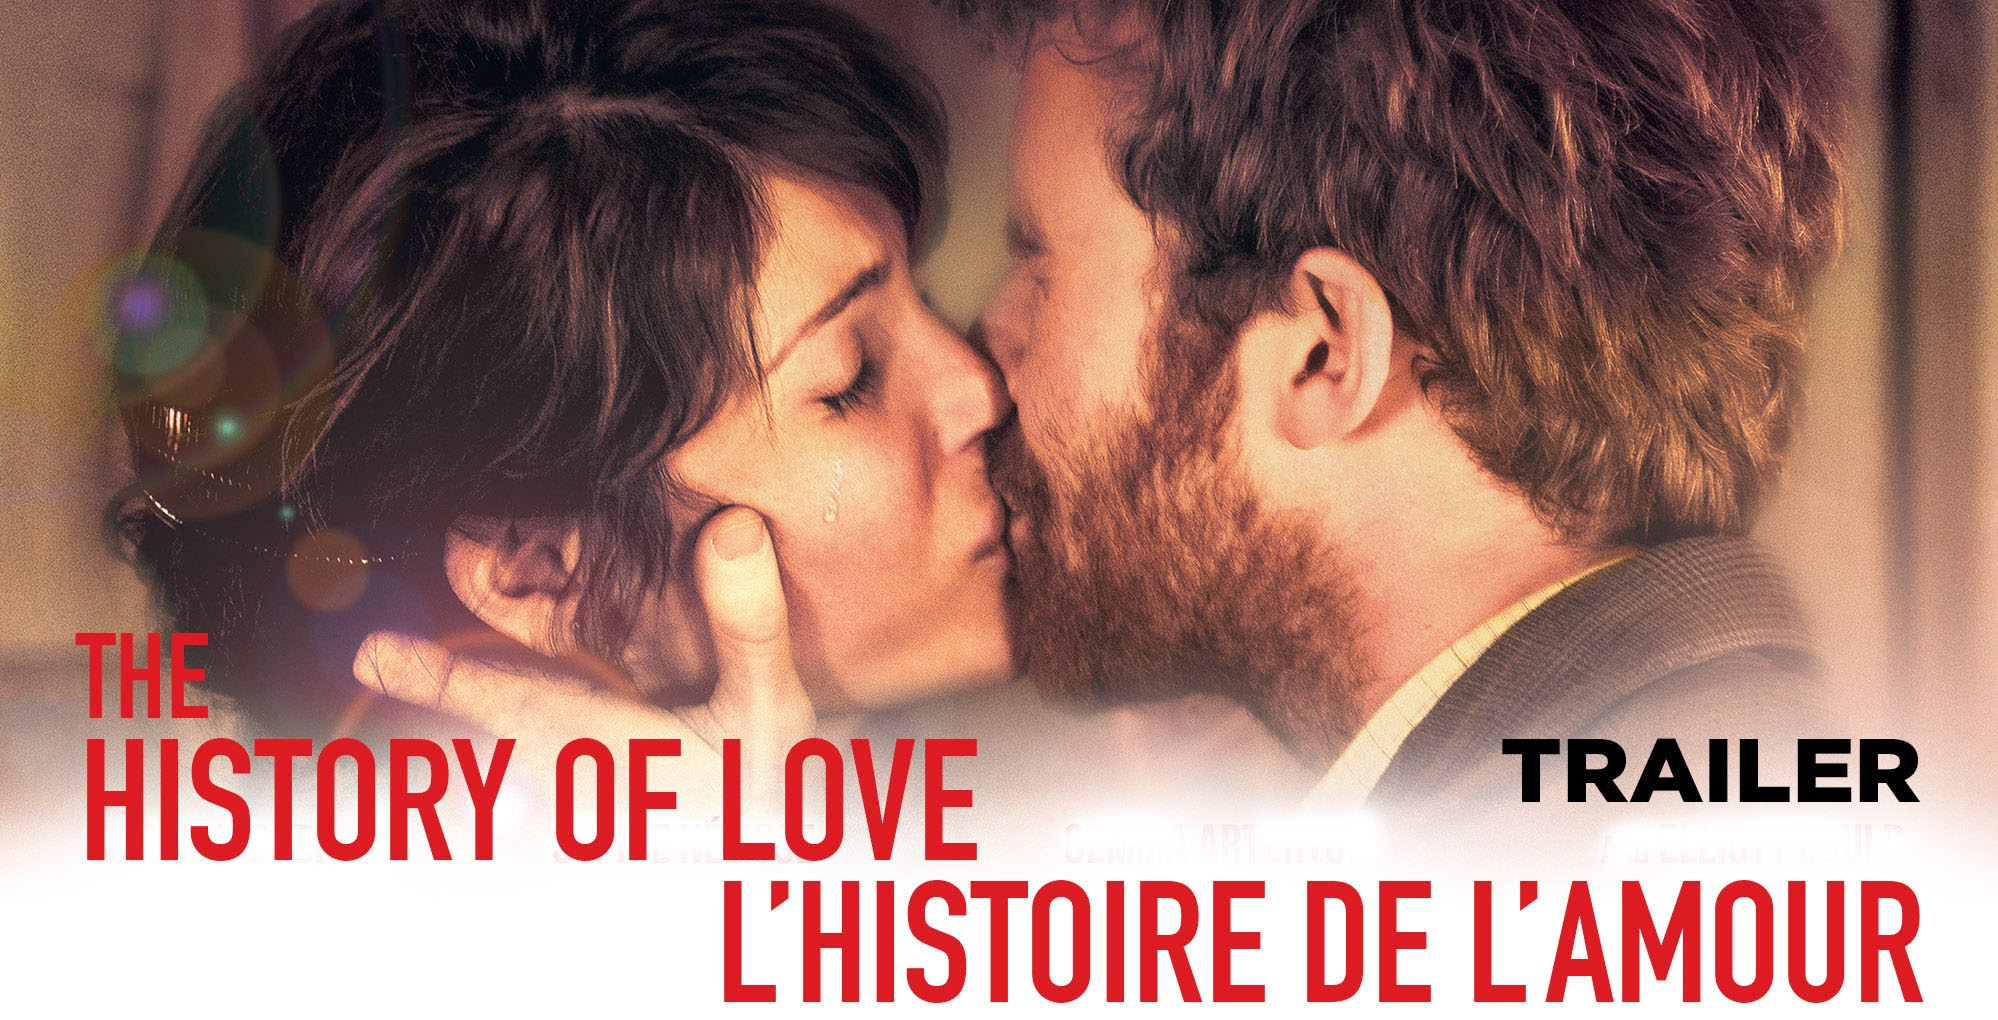 The History of Love (Trailer) - Release : 16/11/2016